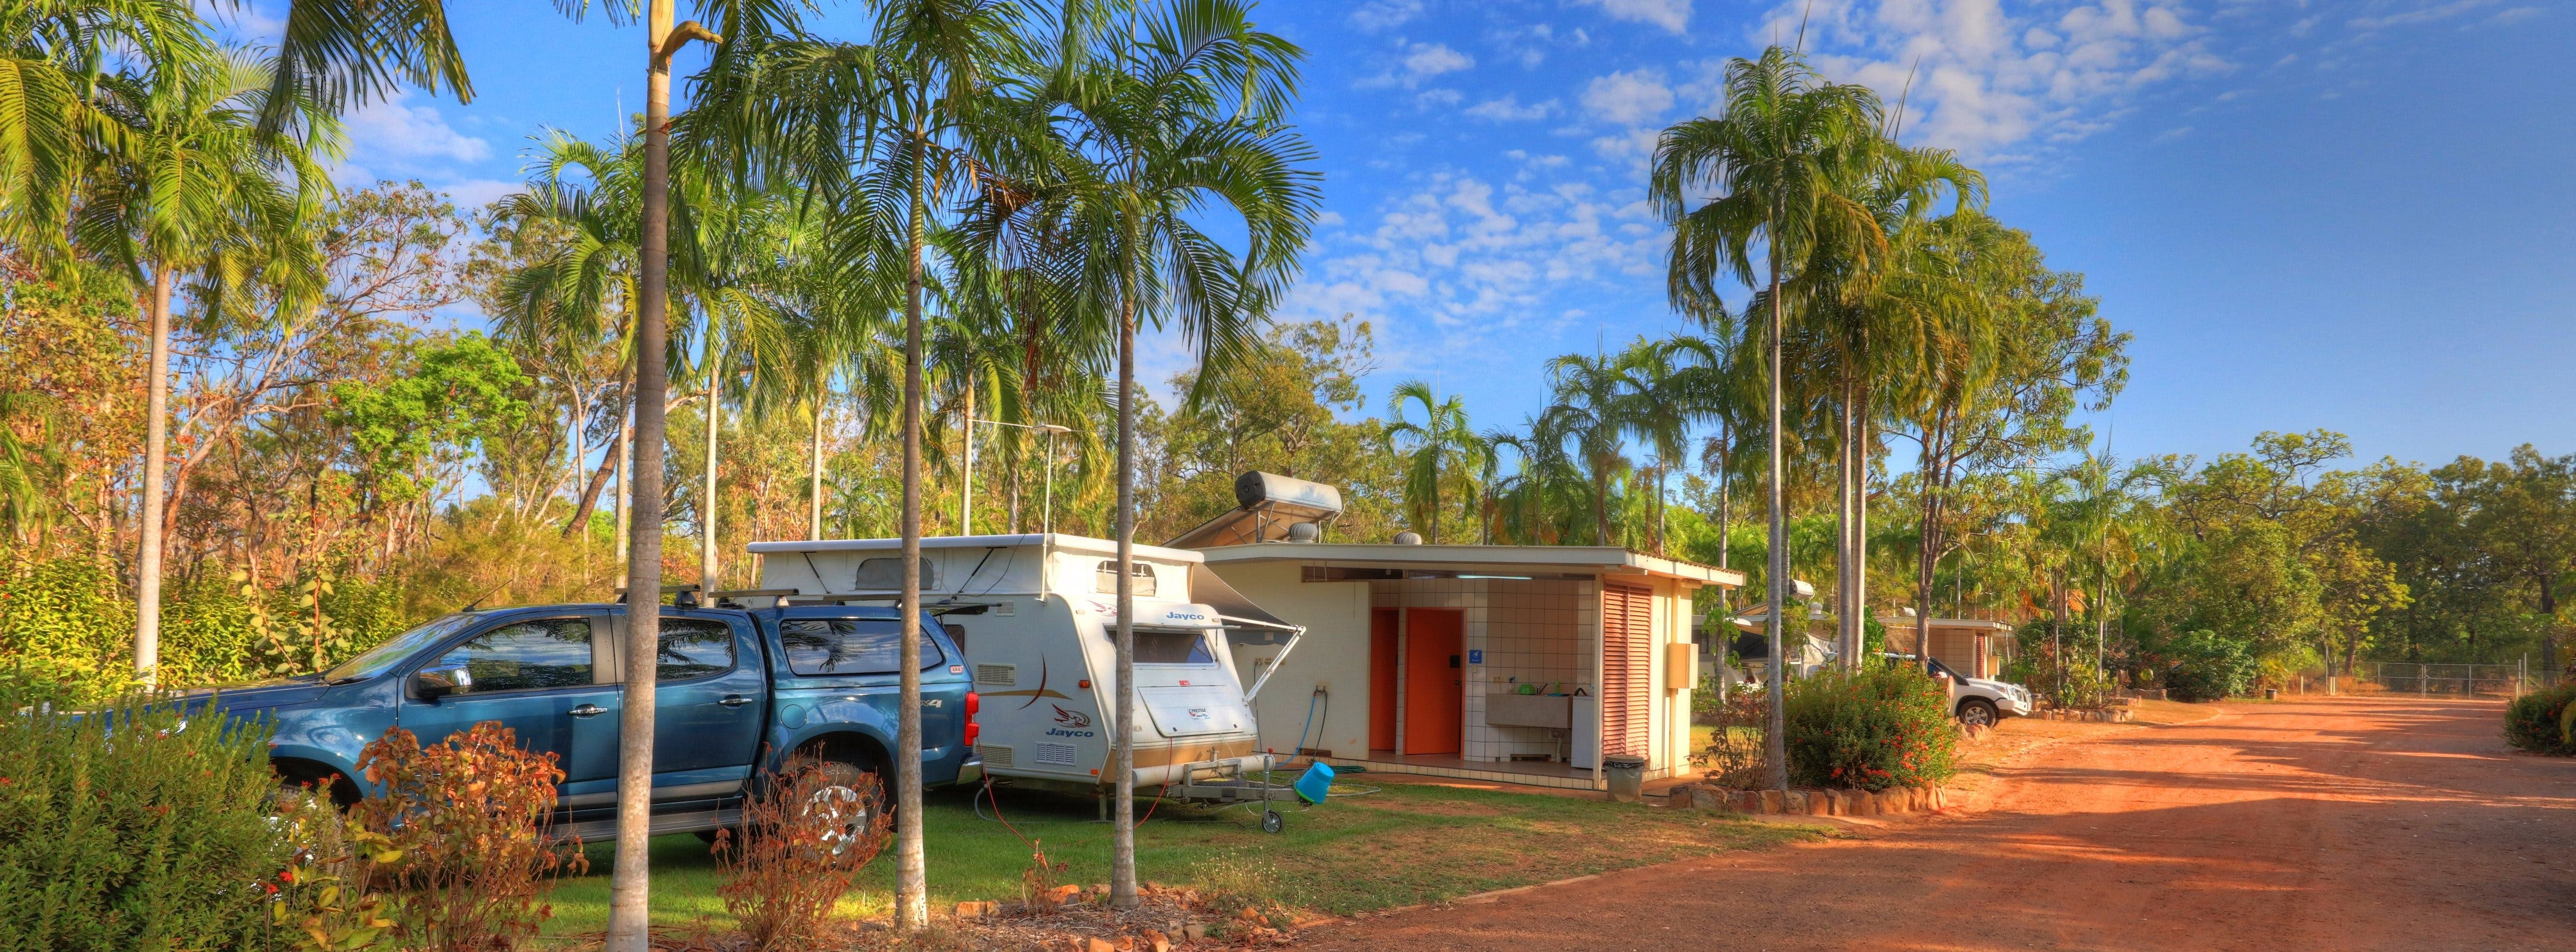 Batchelor Holiday Park - Accommodation Sunshine Coast